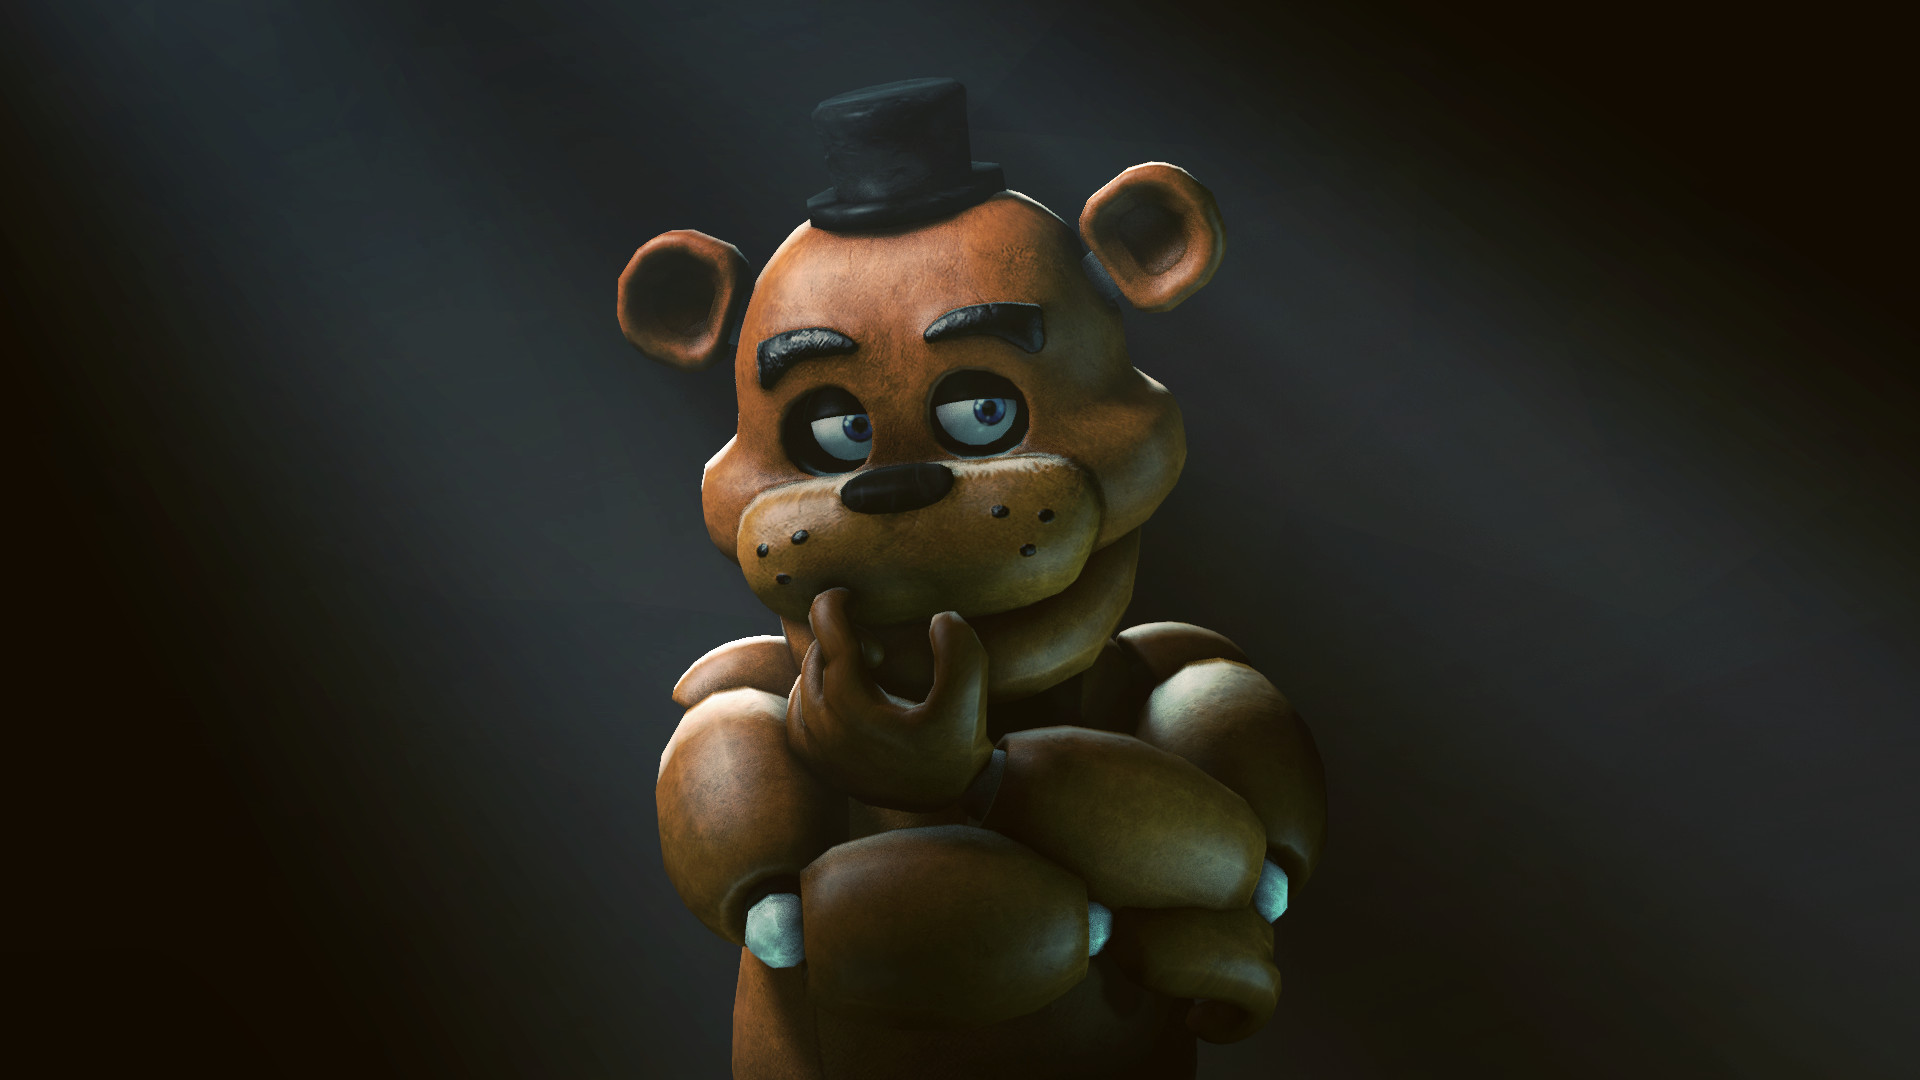 170 best five nights at freddy's images on Pinterest | Freddy s, Freddy  fazbear and Image